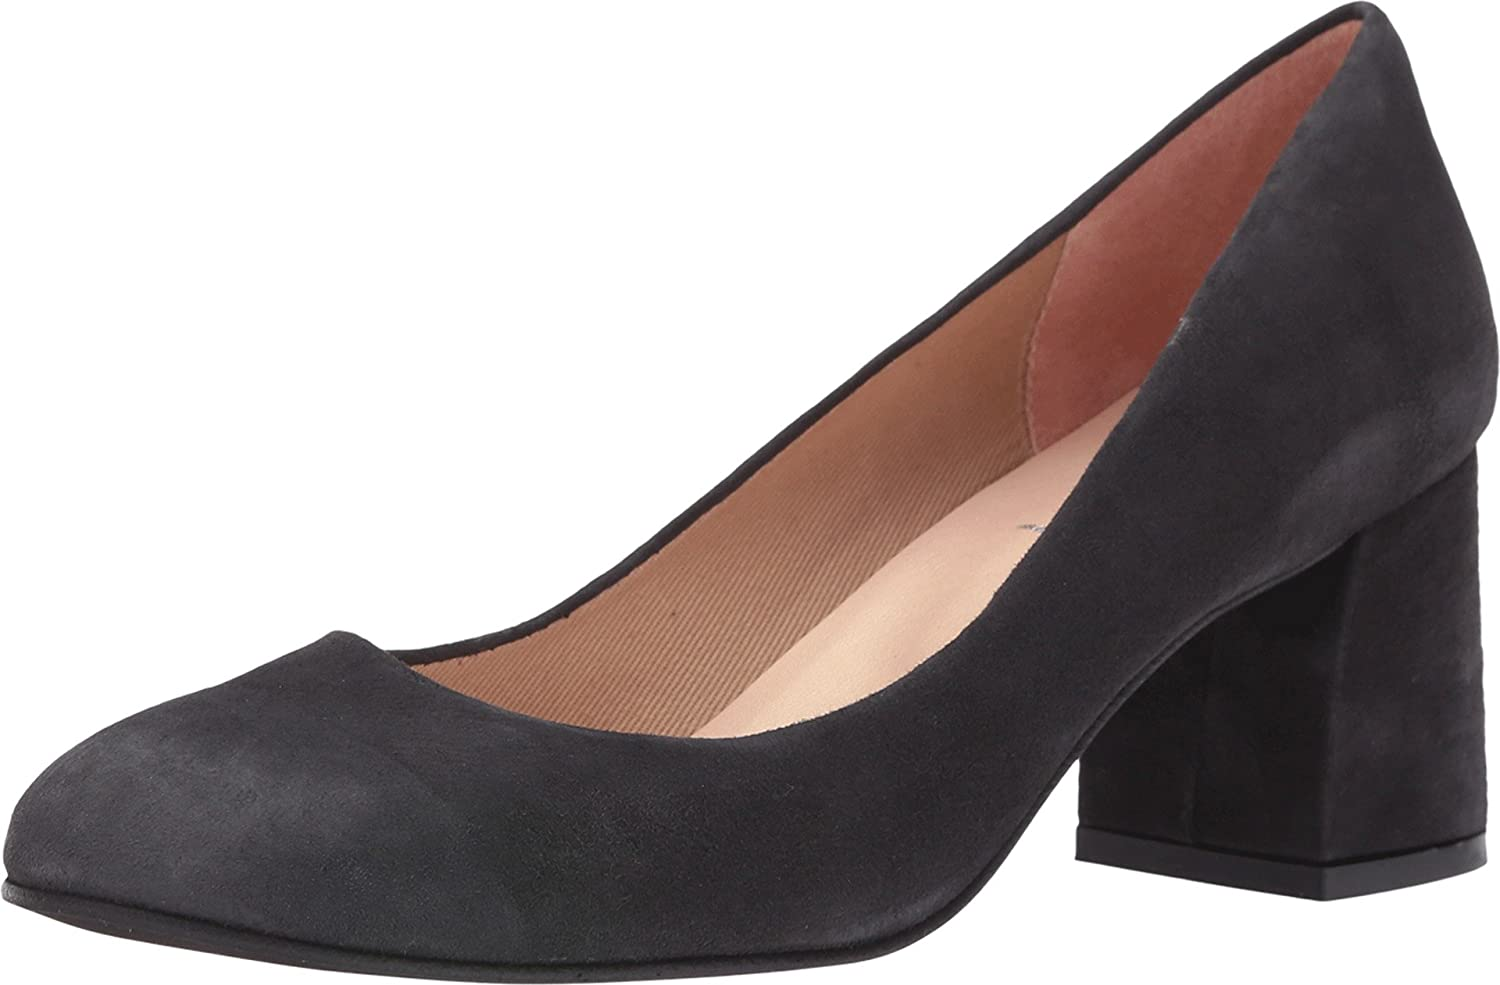 French Sole Women's Trance Grey Suede Pump 6 M